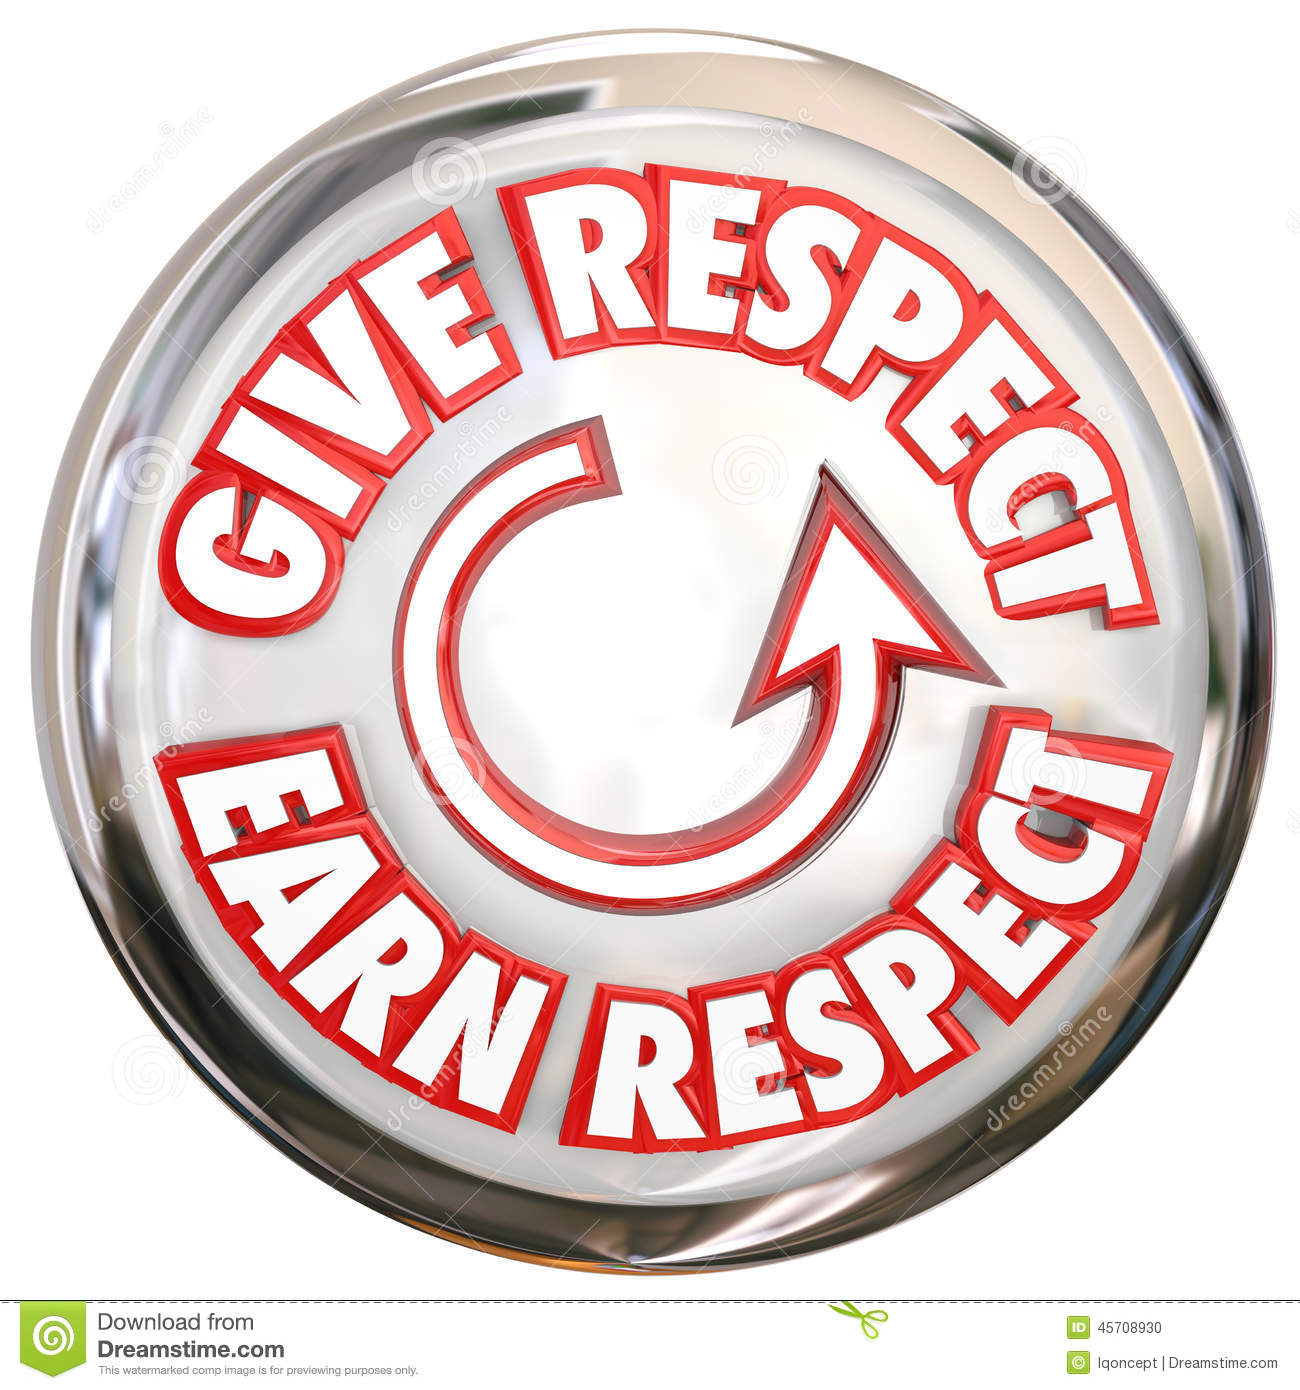 Give to Earn Respect Words | Clipart Panda - Free Clipart ...